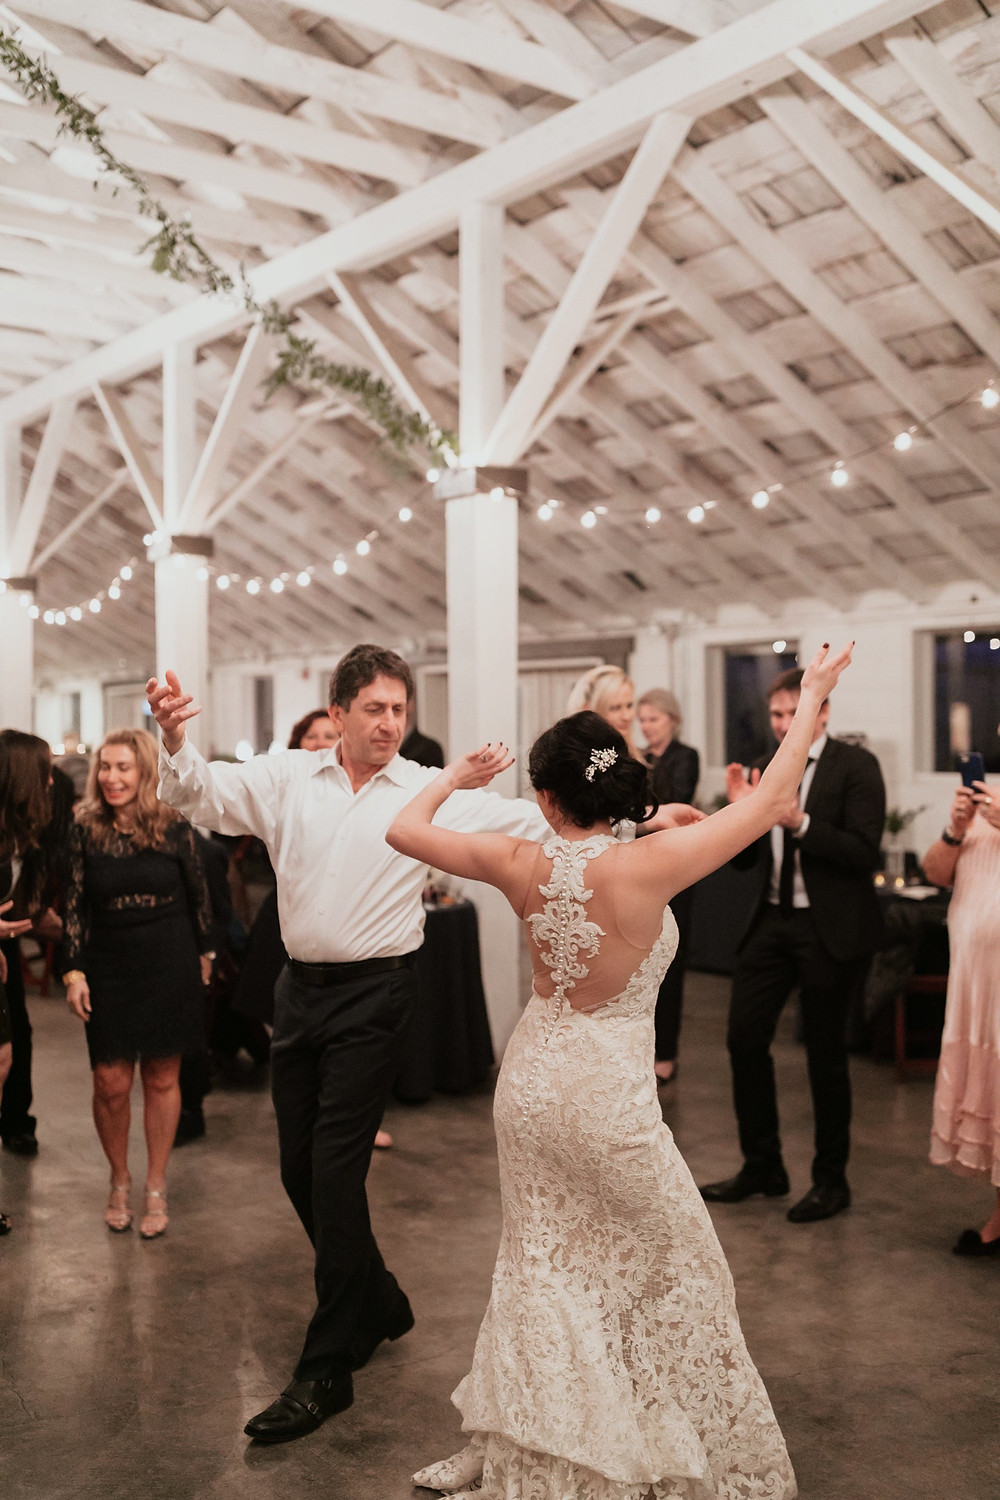 Photo of a bride dancing during the reception of her winter wedding at Dairyland in Snohomish, a wedding venue near Seattle, WA. | My Snohomish Wedding | Snohomish Wedding Planning